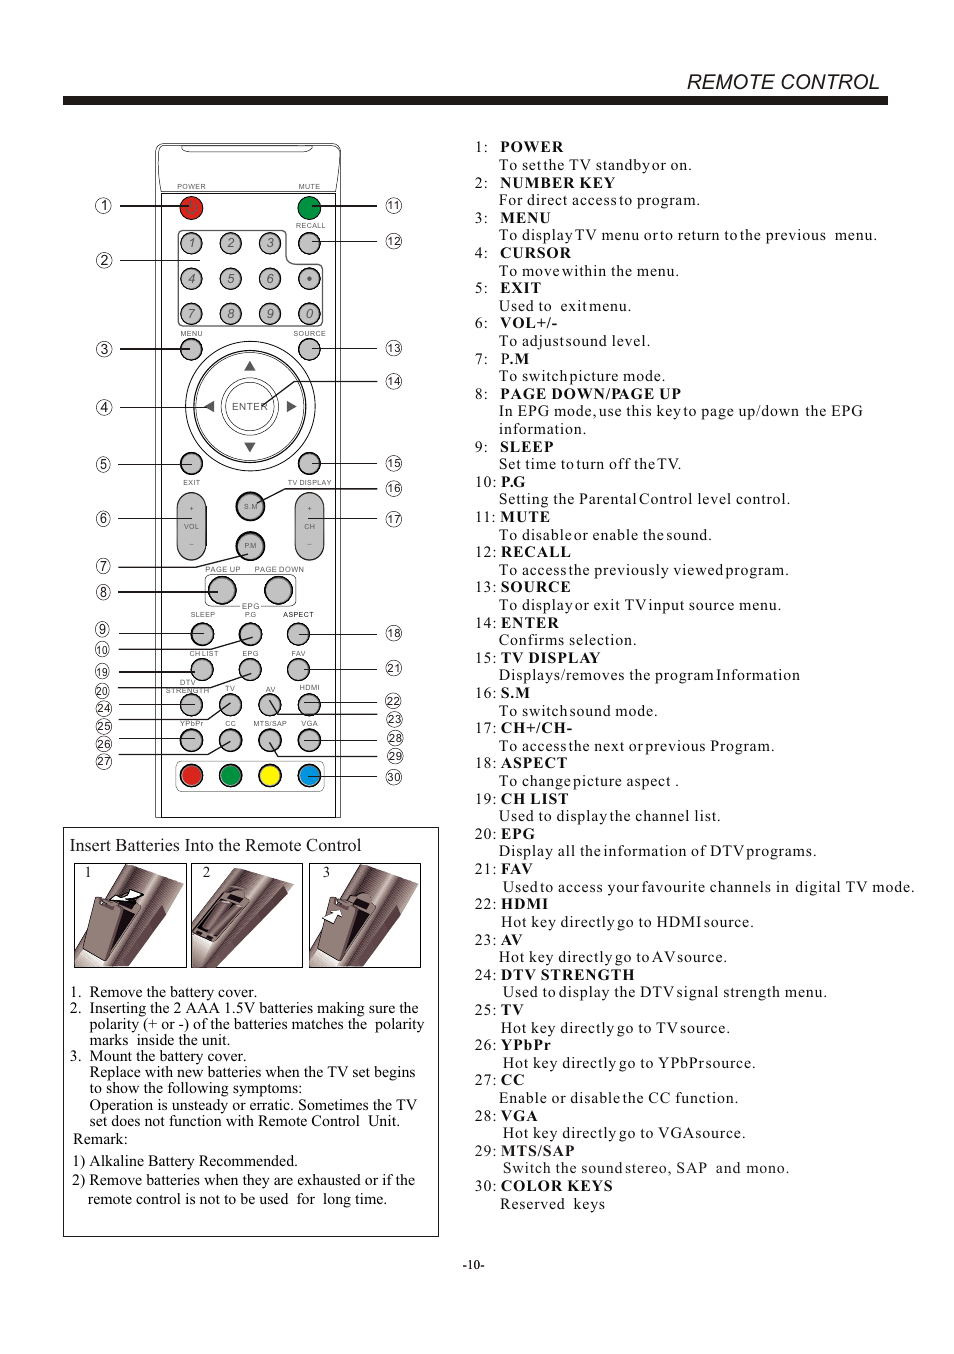 Т³гж 11, Remote control, Insert batteries into the remote